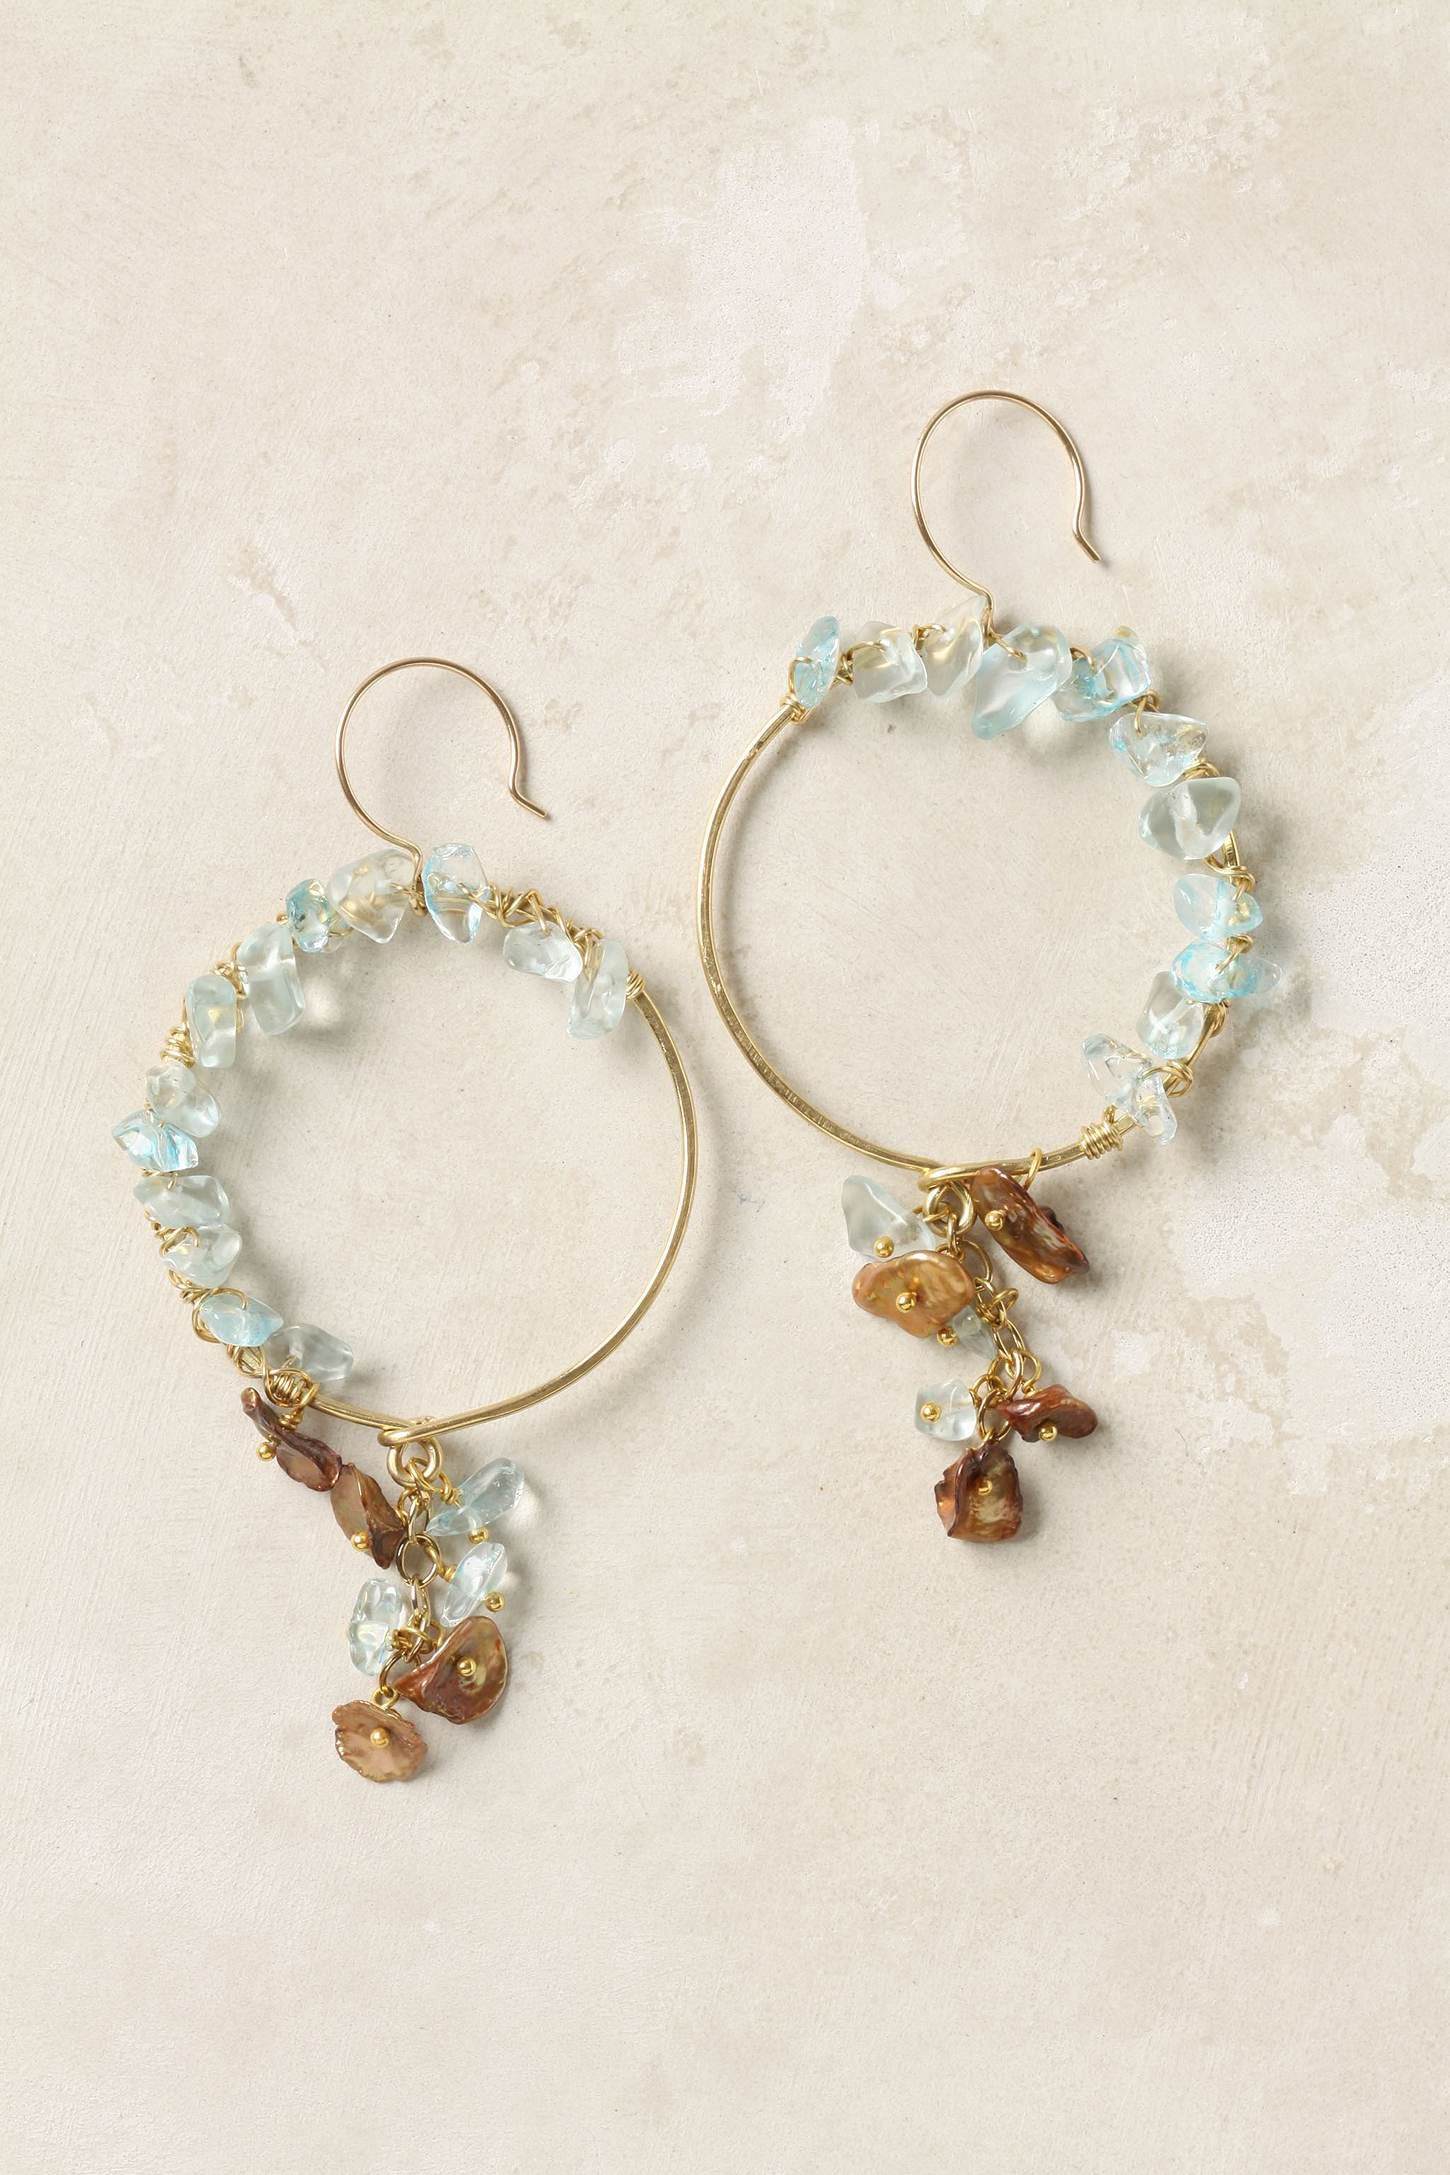 New Growth Hoops, Anthropologie. $128 | attire | Pinterest | Jewelry ...